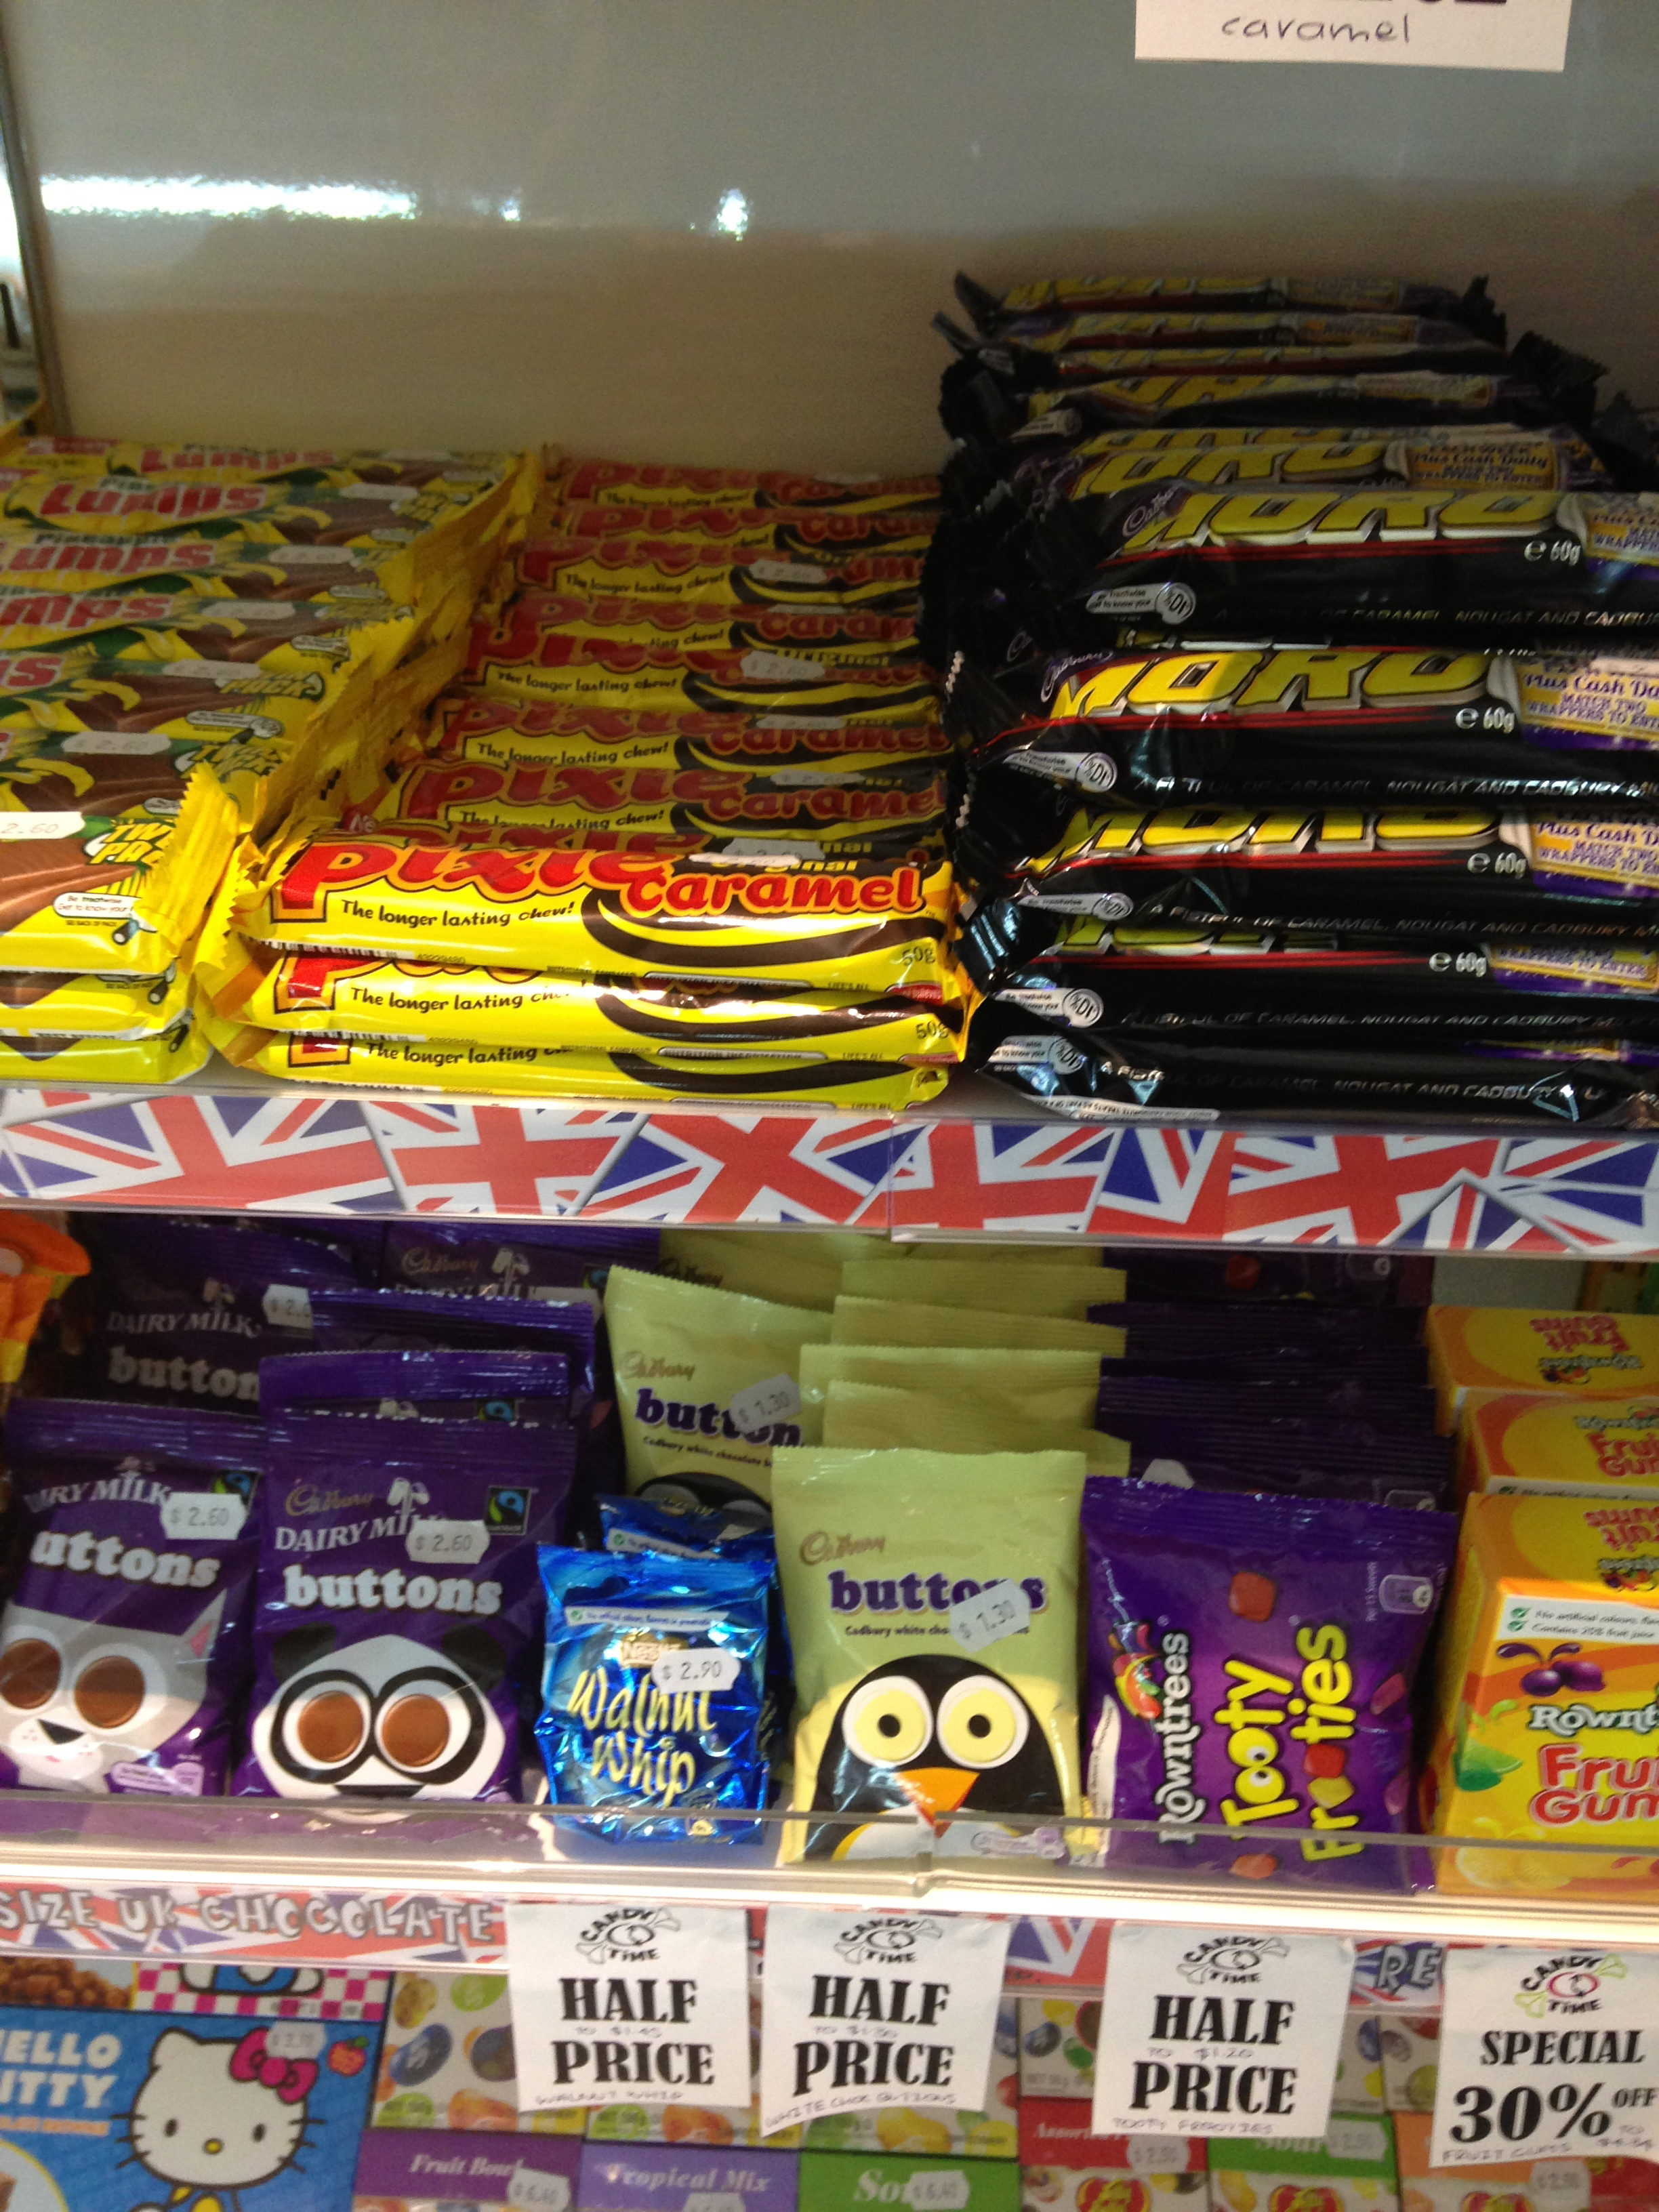 Where Is The Best Place To Buy Imported Chocolate On The